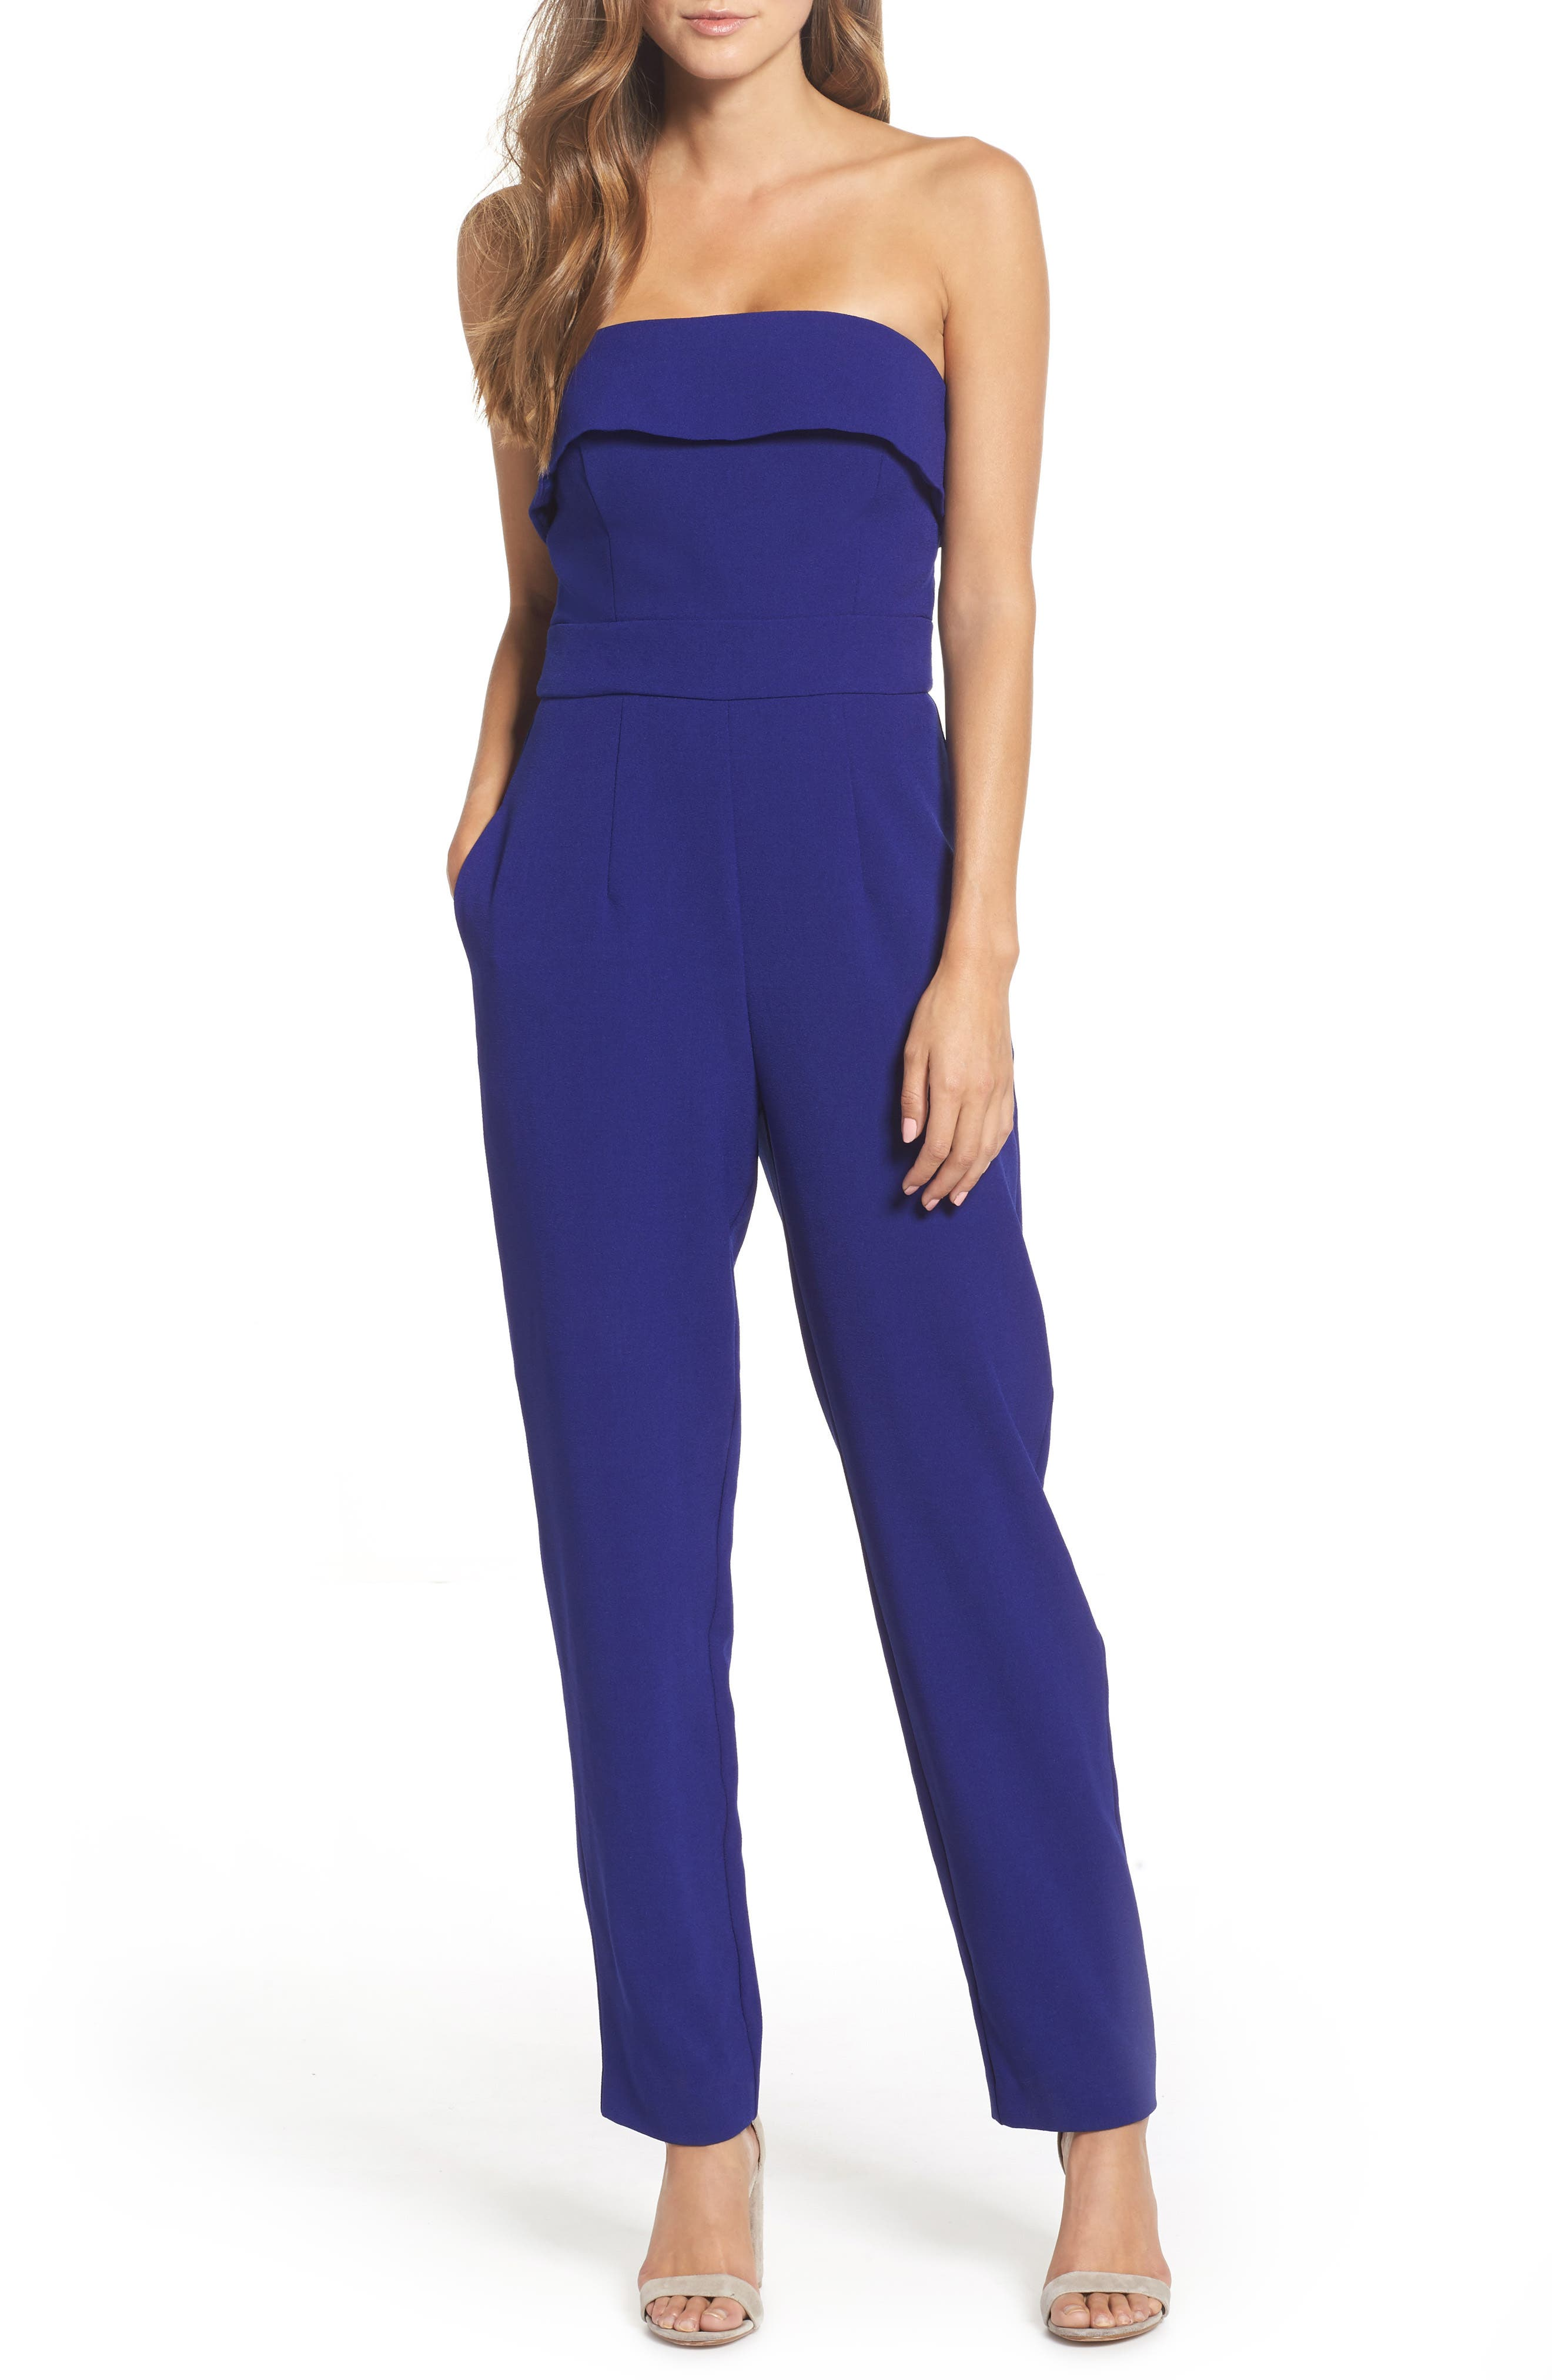 Alternate Image 1 Selected - Vince Camuto Strapless Jumpsuit (Regular & Petite)